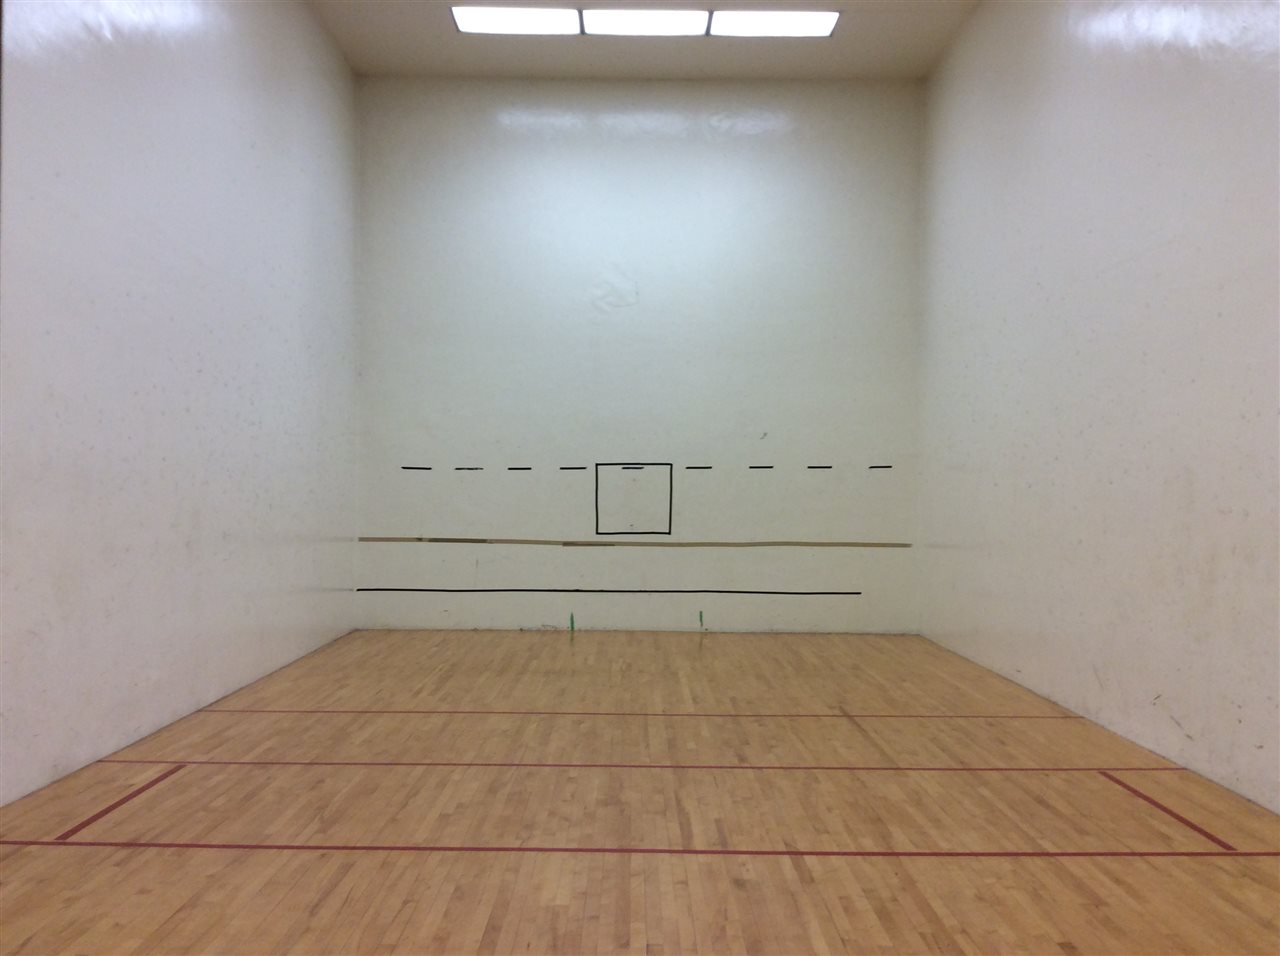 Racket ball court